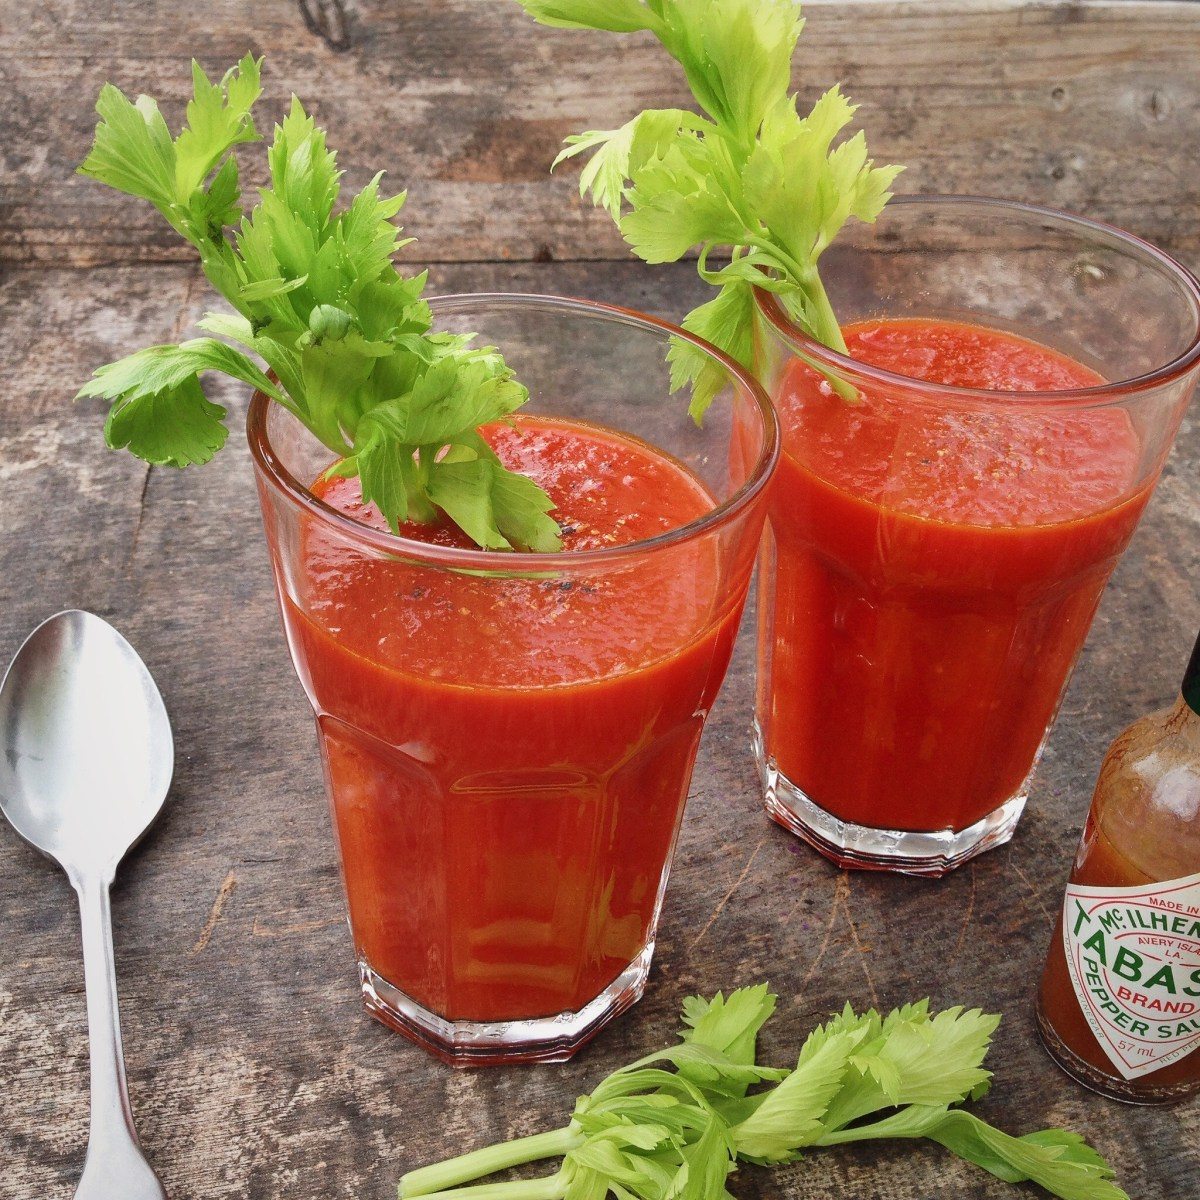 Bloody Mary soep, oftewel pittige tomatensoep